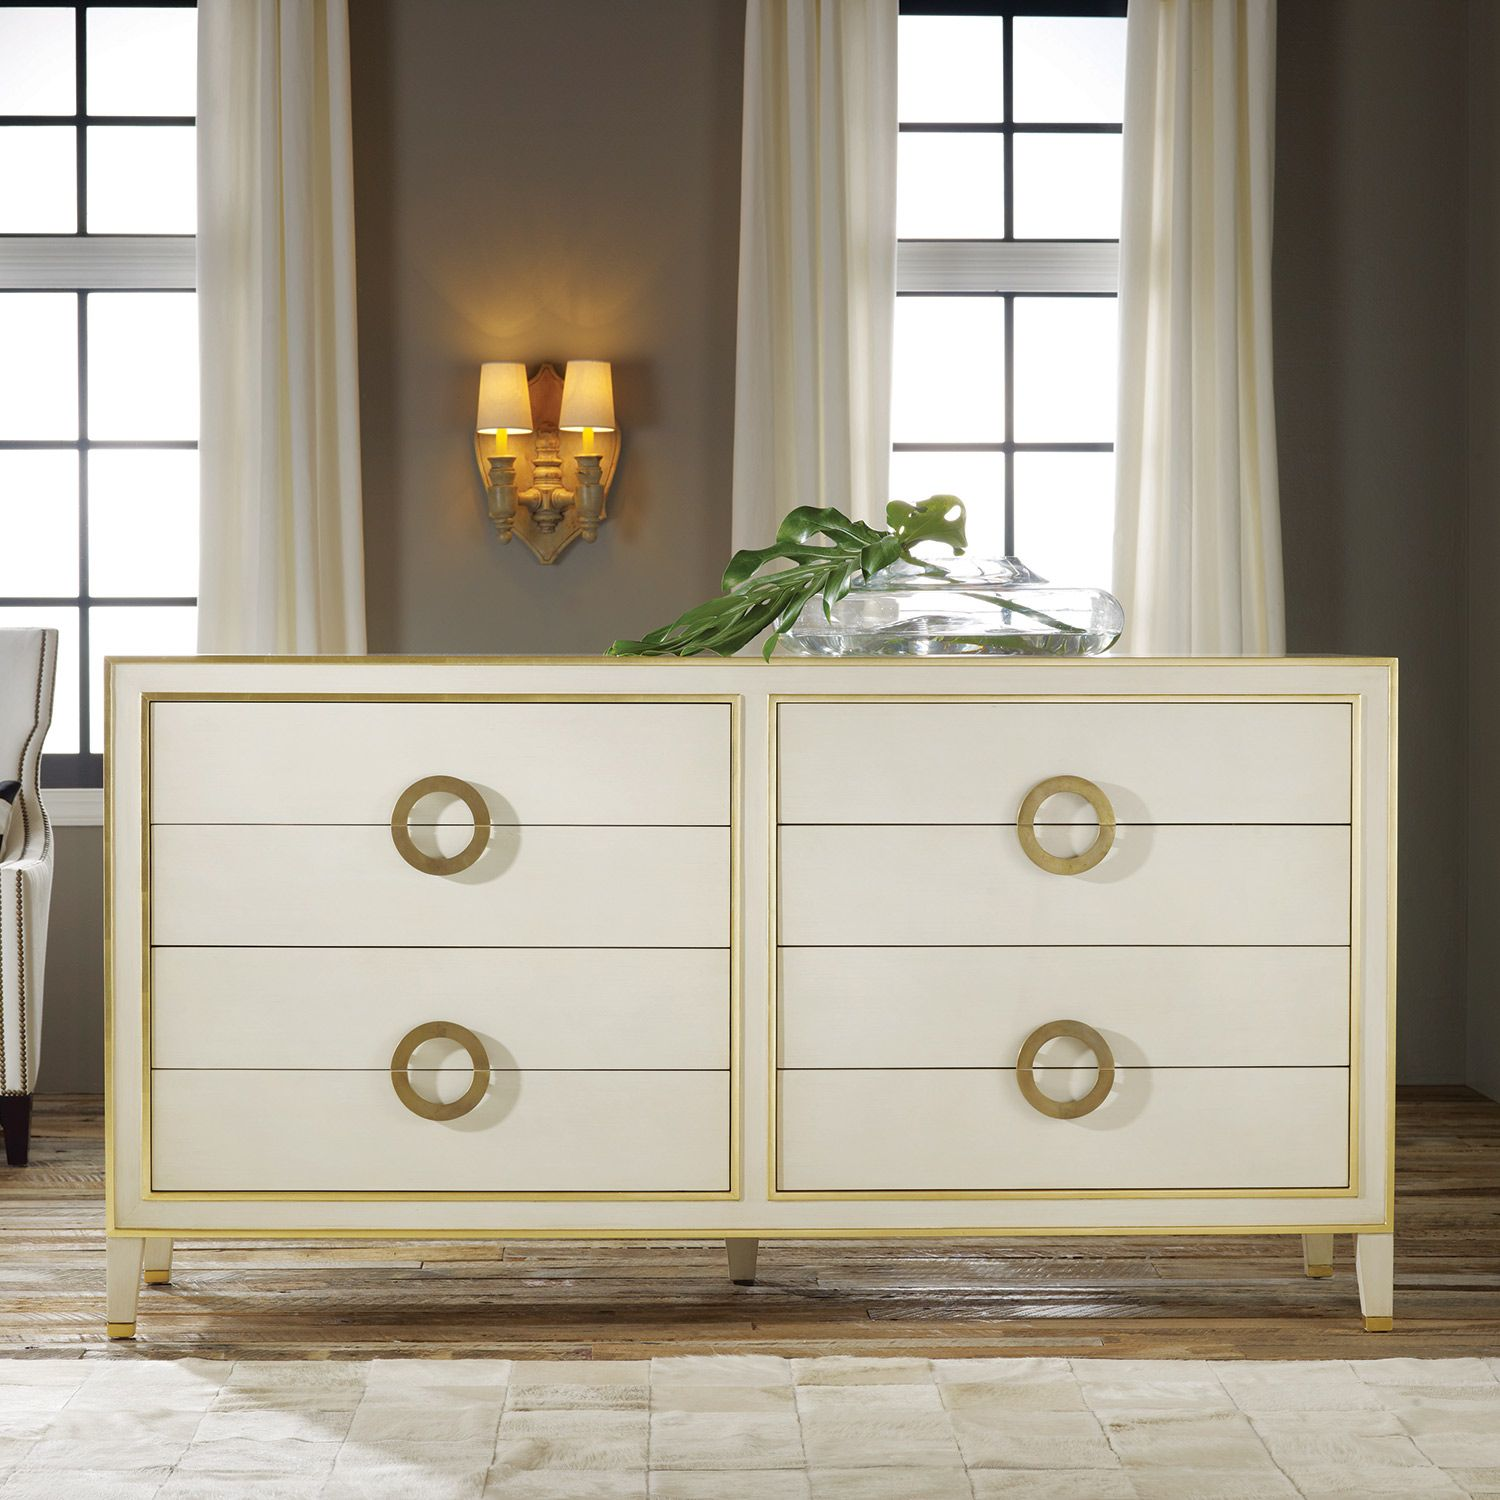 modern dressers  bedroom and living room image collections -  images about mb furniture on pinterest  drawer dresser  imagesabout mb furniture on